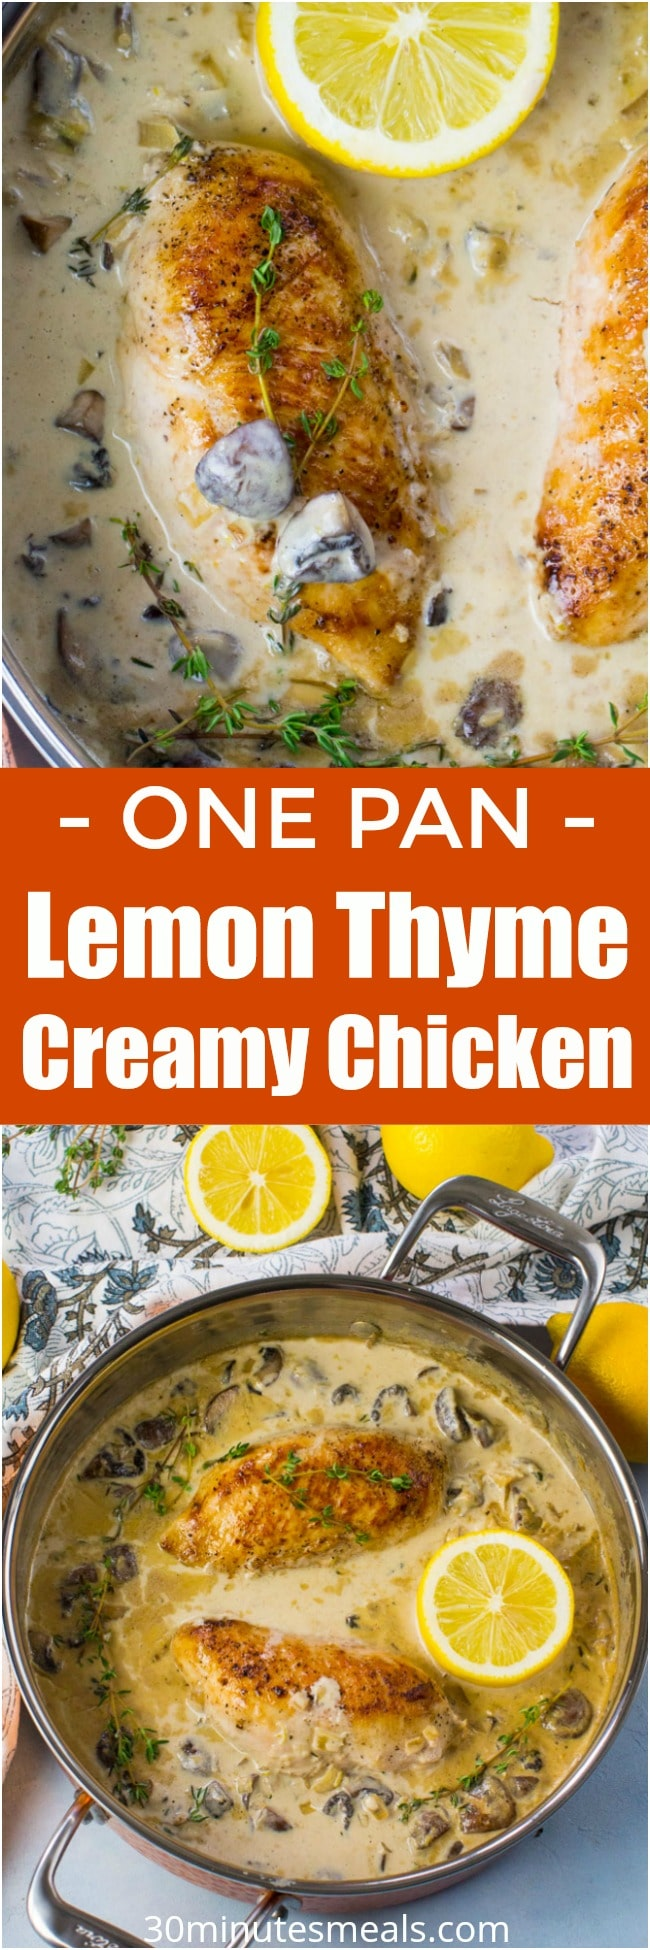 Creamy Lemon Thyme Chicken is made with white wine, lemon zest, cream, mushrooms and thyme. Made in one pan in just 30 minutes.